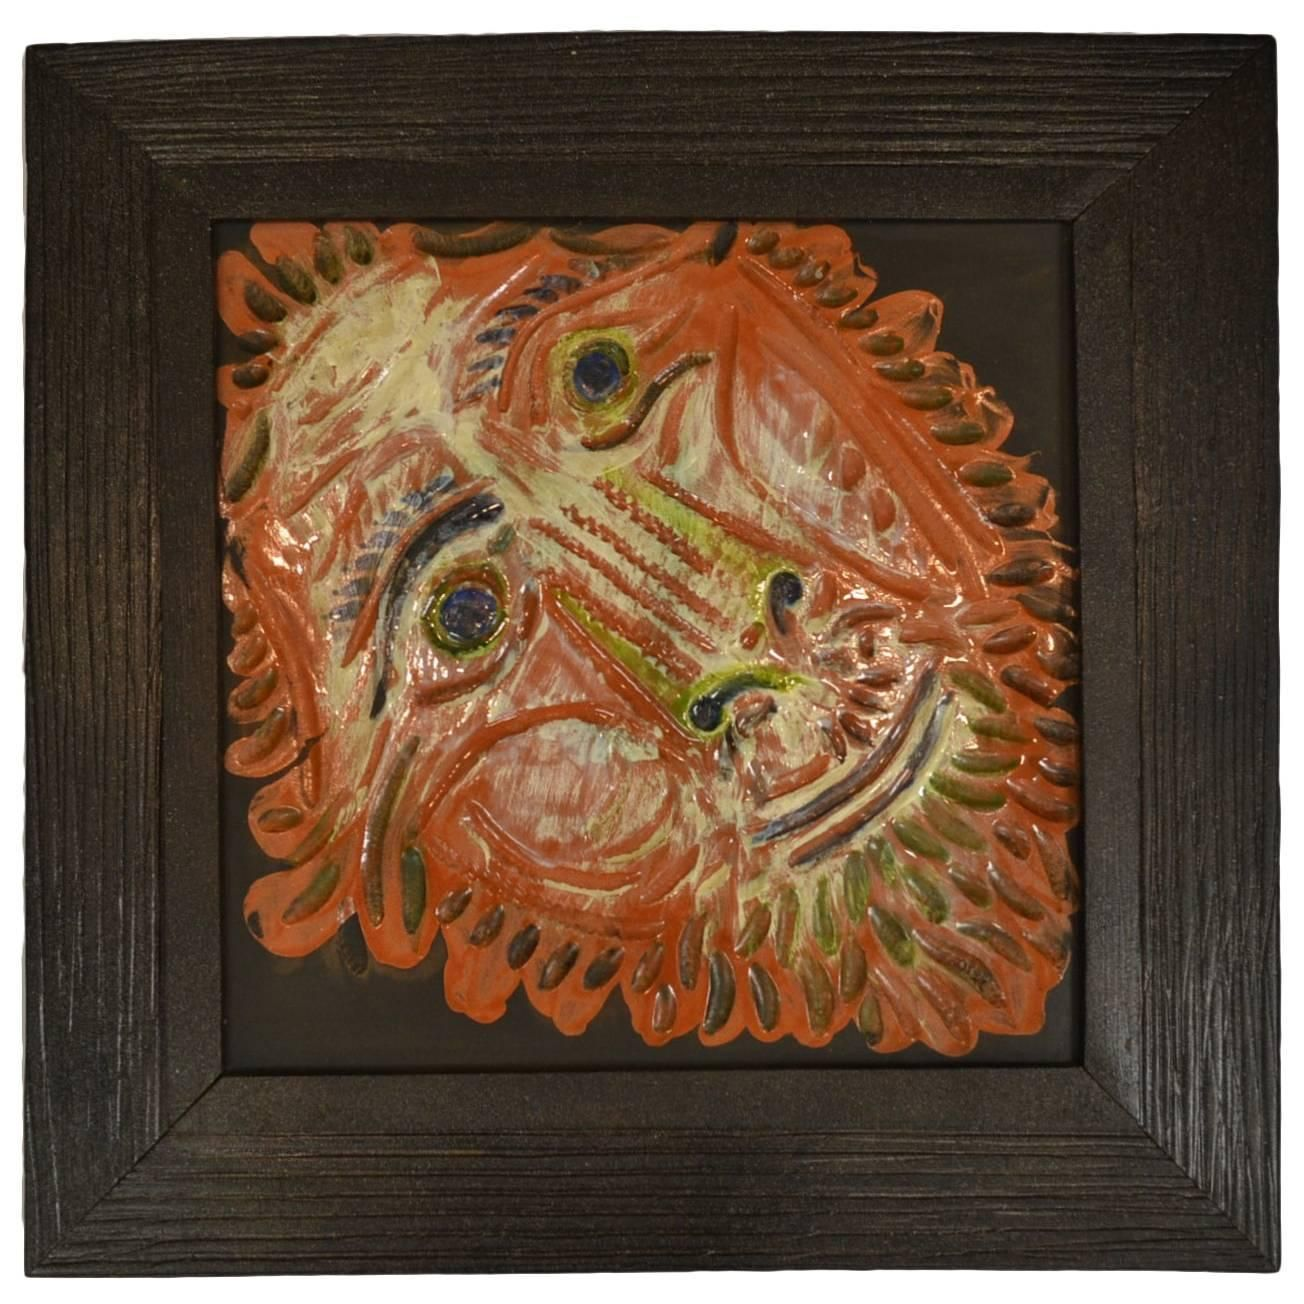 Large Tete-de-lion (Lion's Head) Madoura Pottery Tile (Ar 575) by Pablo Picasso | From a unique collection of antique and modern sculptures at https://www.1stdibs.com/furniture/decorative-objects/sculptures/